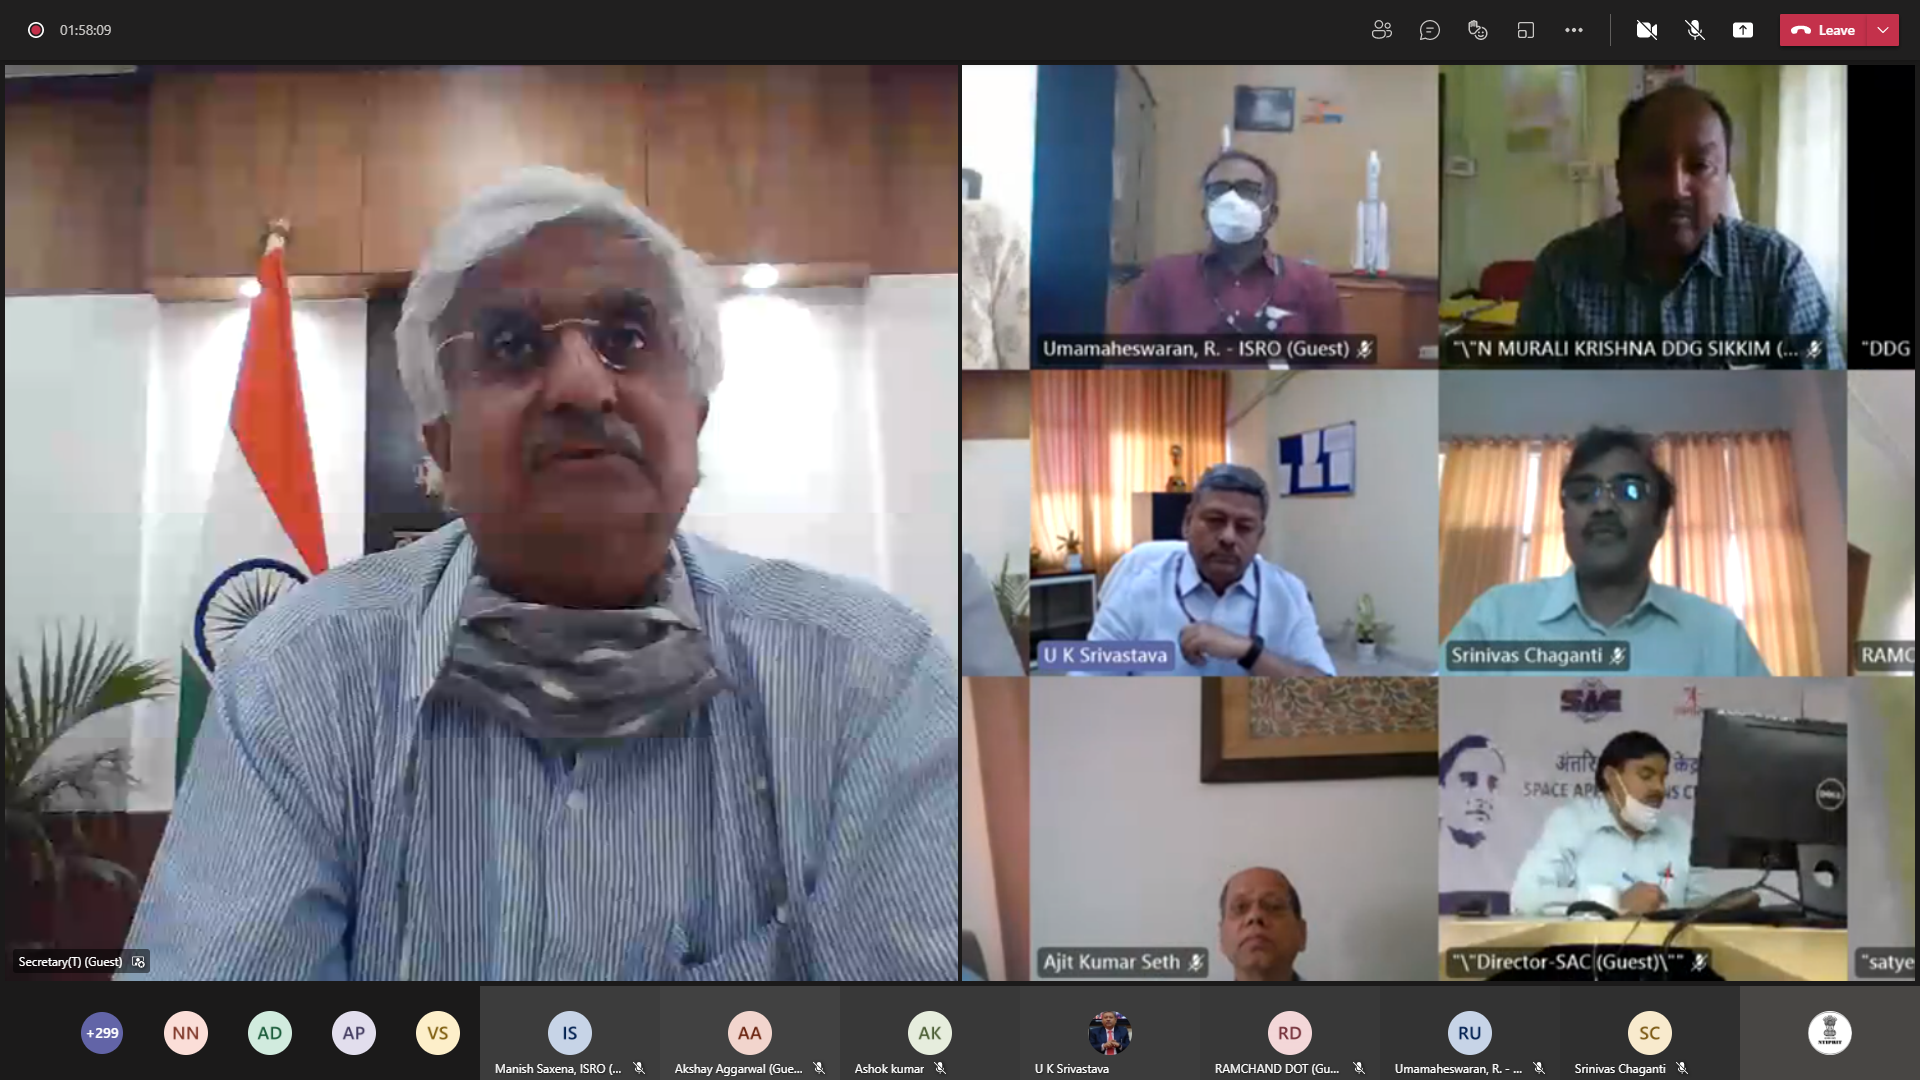 """NTIPRIT conducts webinar on """"NavIC — Opportunities for the Telecom Industry"""" in collaboration with ISRO and telecom industry"""